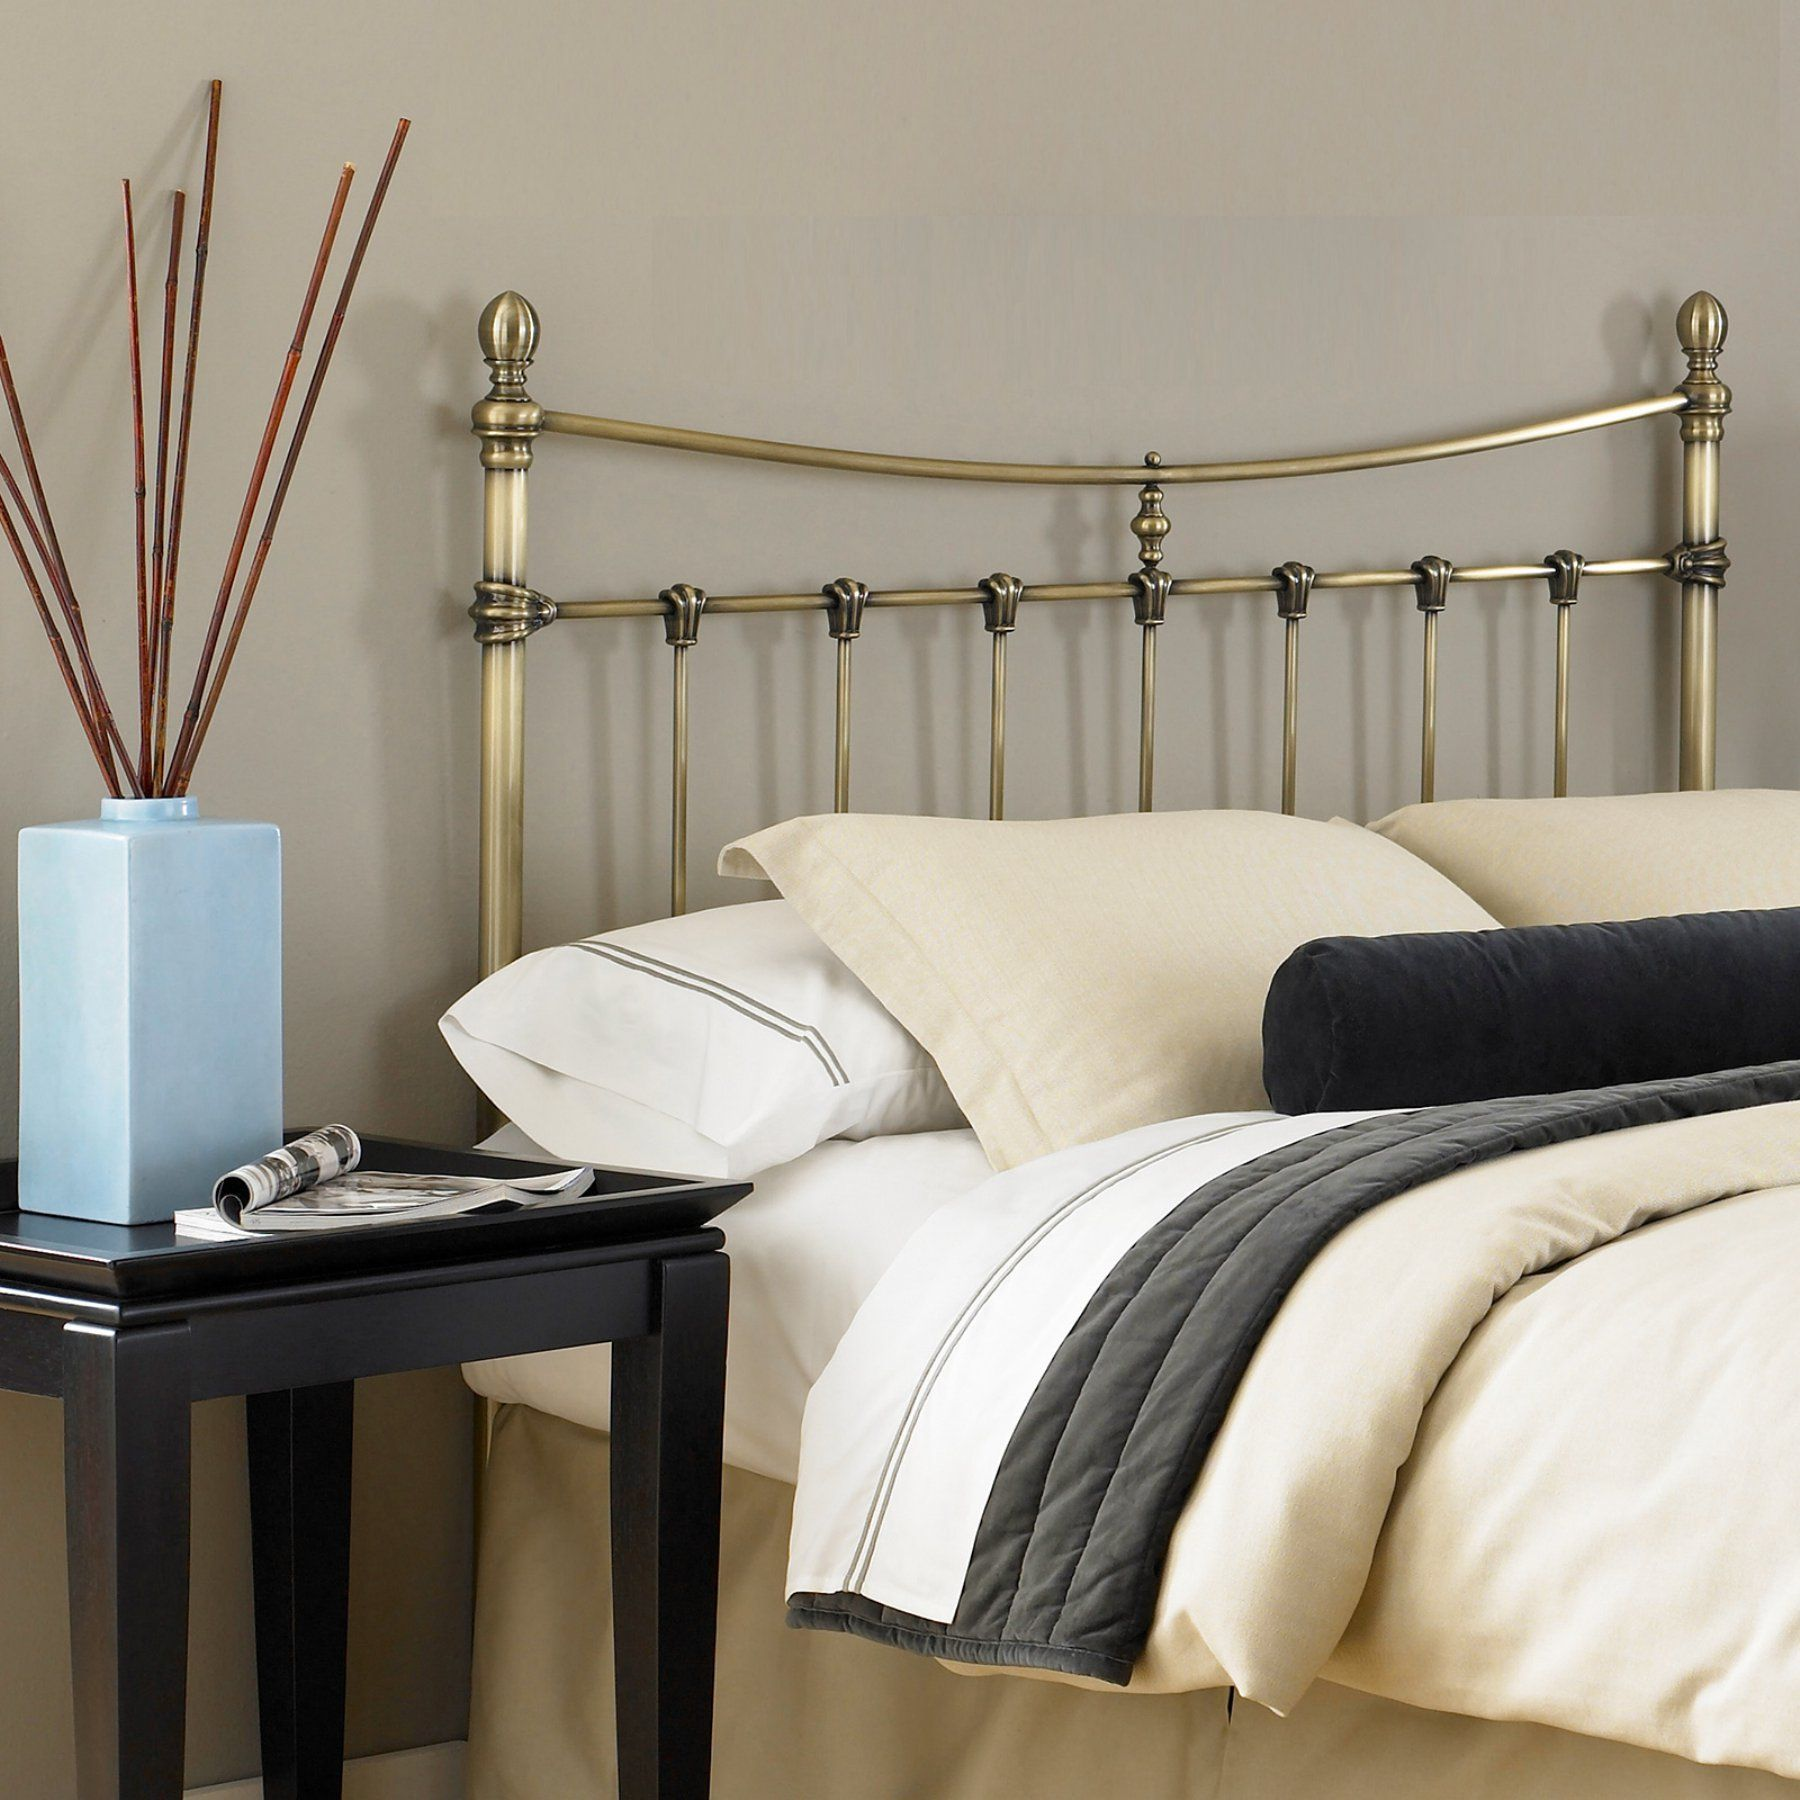 Fashion Bed Group Leighton Bed RN1141 Bed styling